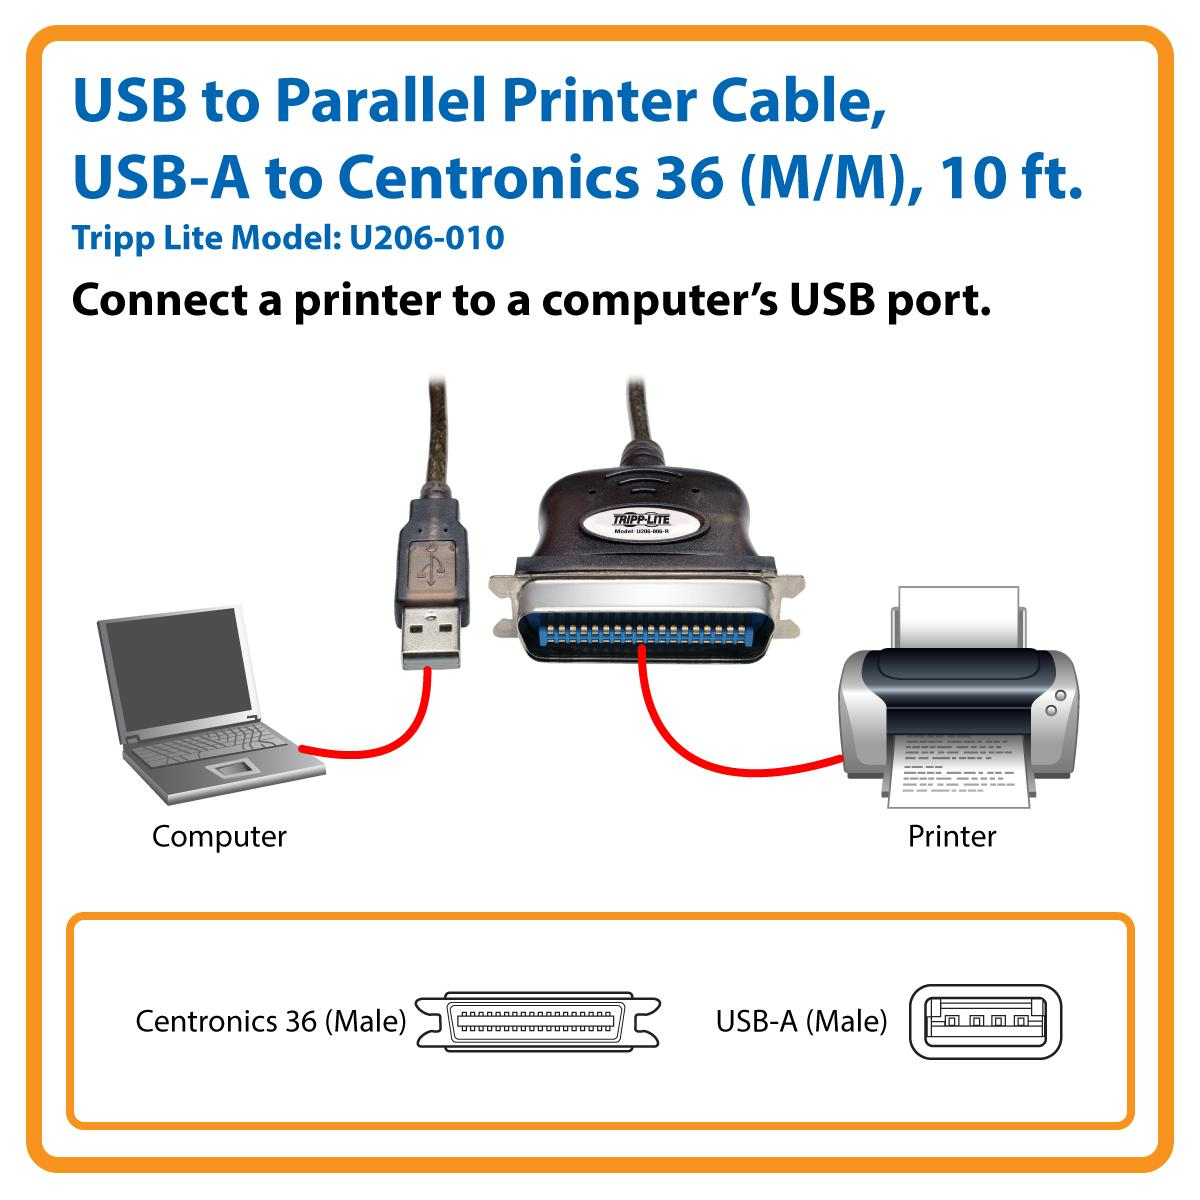 GIGAWARE USB-A TO CENTRONICS PARALLEL PRINTER CABLE DRIVER